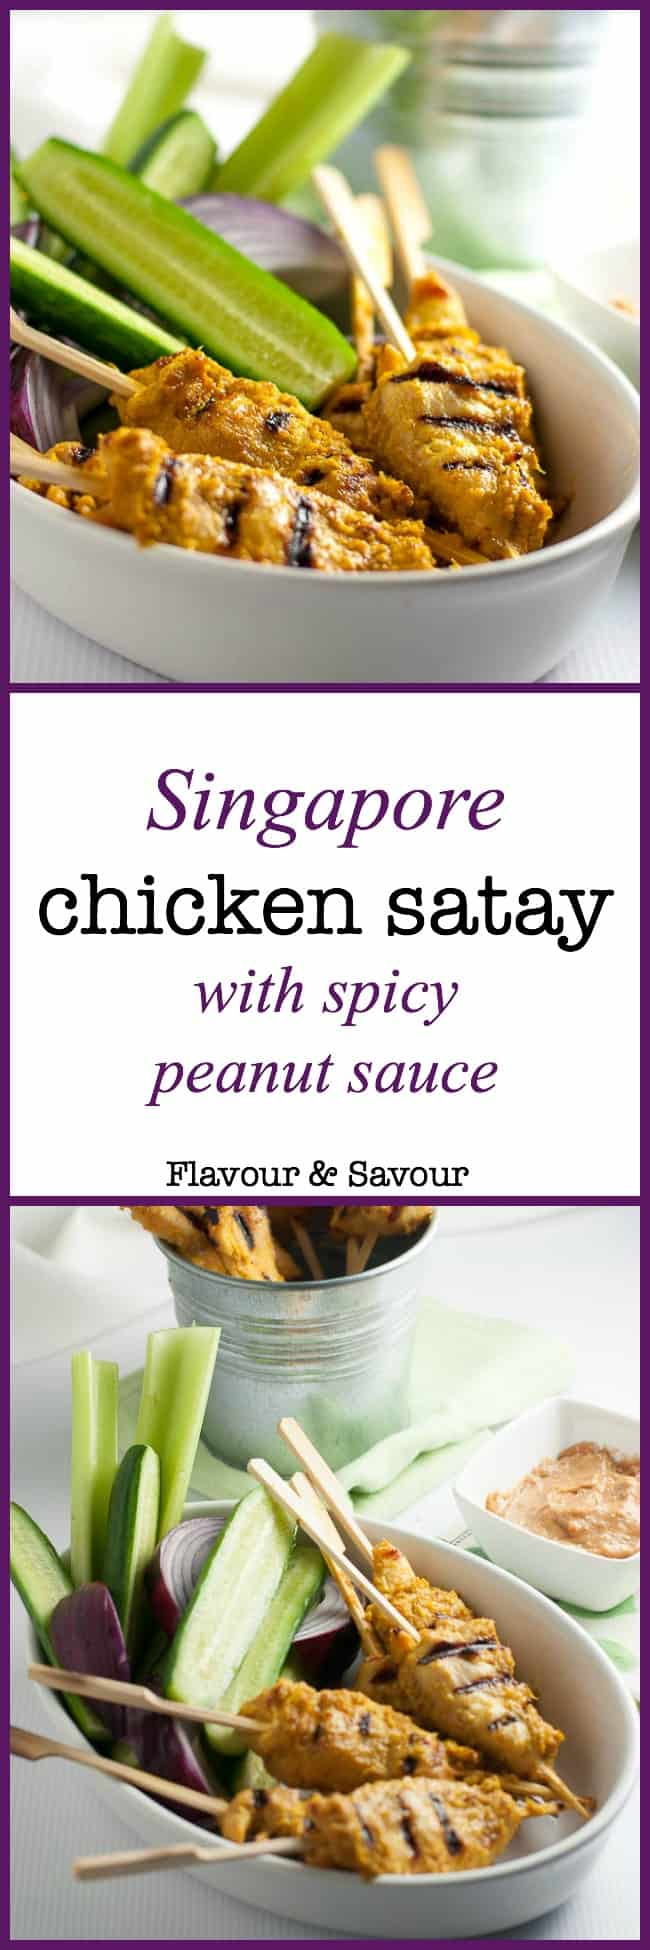 This Simple Singapore Chicken Satay with Peanut Dipping Sauce makes a greatappetizer or alight meal, when served with some crunchy veggies. It's crisp and spicy and it'sa perfect choice for a barbecue, a party or a simple weeknight meal. It's an easy meal that you can cook on either an indoor or outdoor grill. |www.flavourandsavour.com